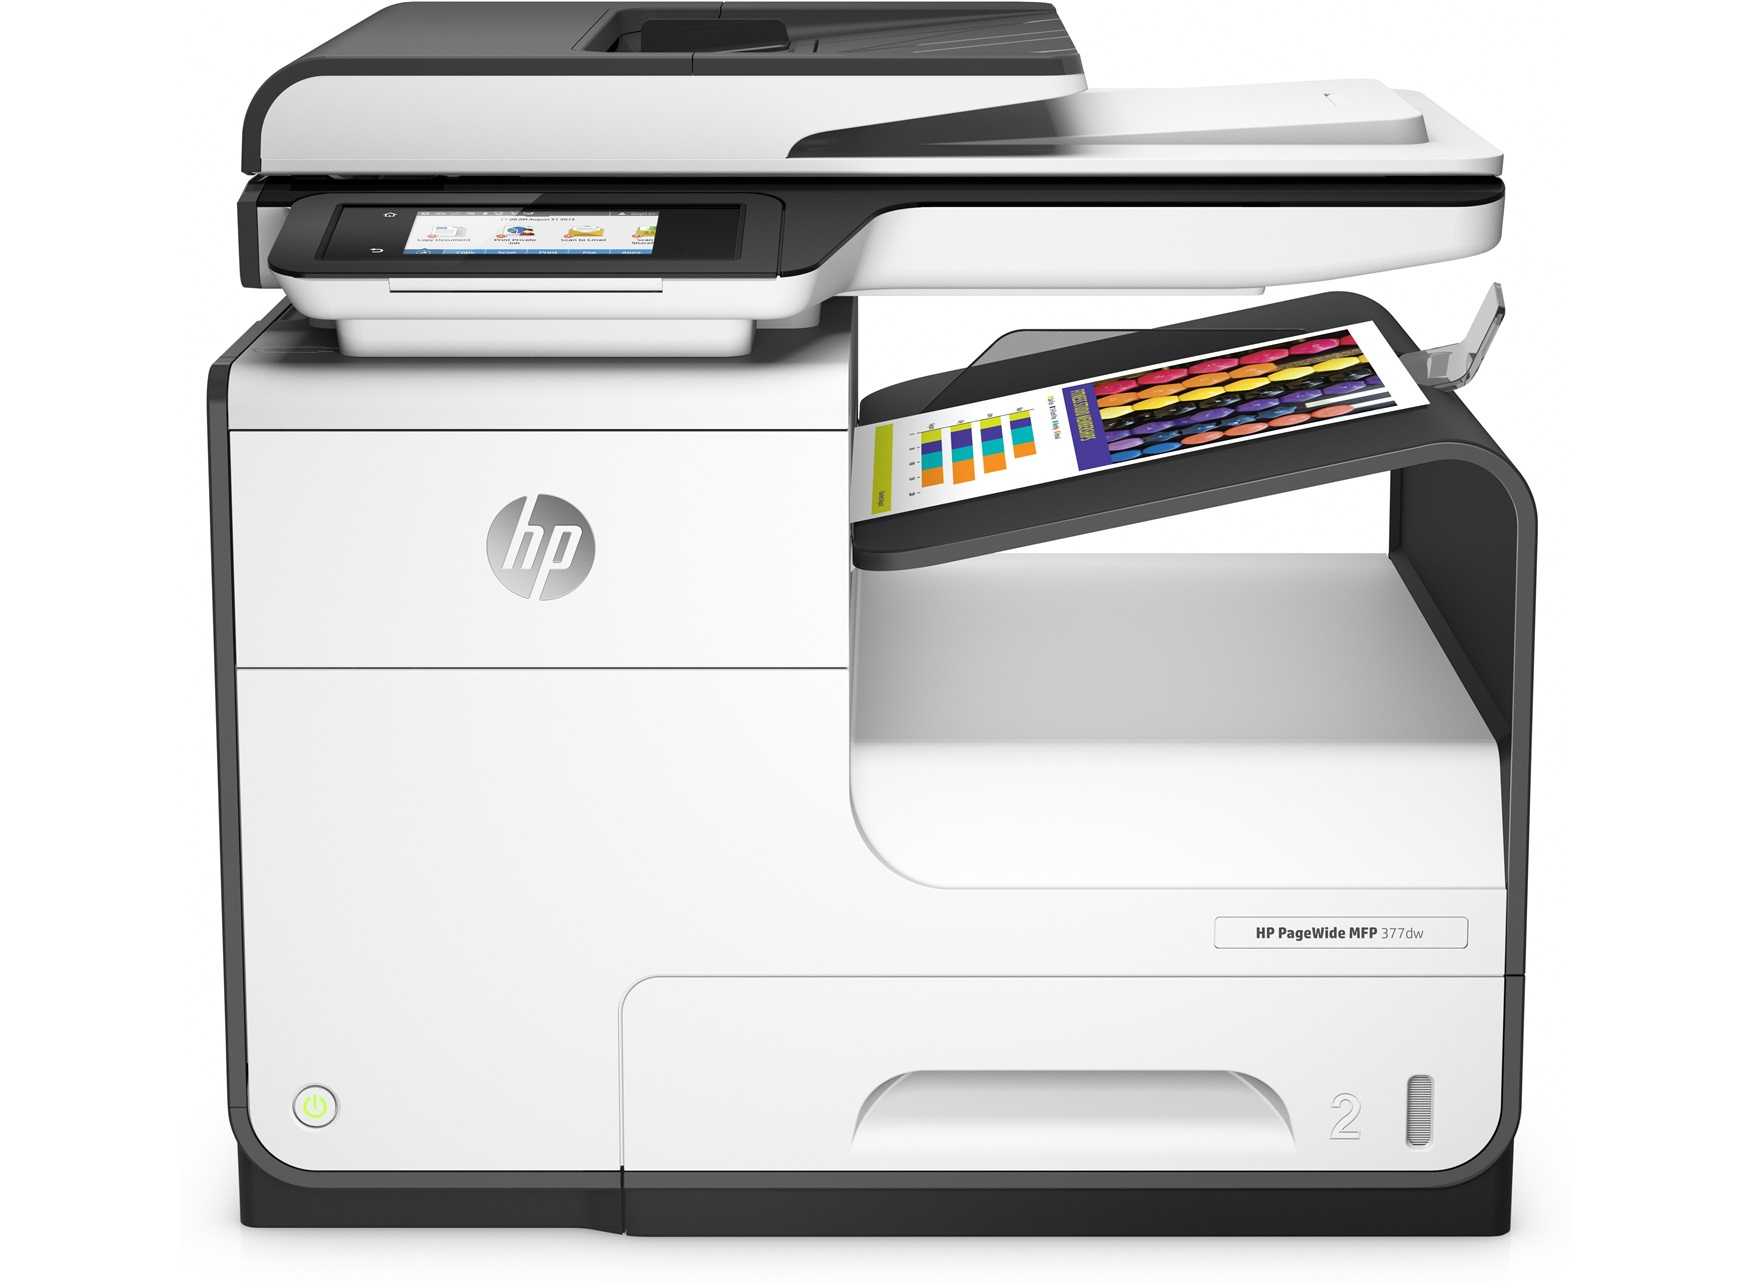 HP PageWide 377dw 2400 x 1200 DPI 30 ppm A4 Wifi